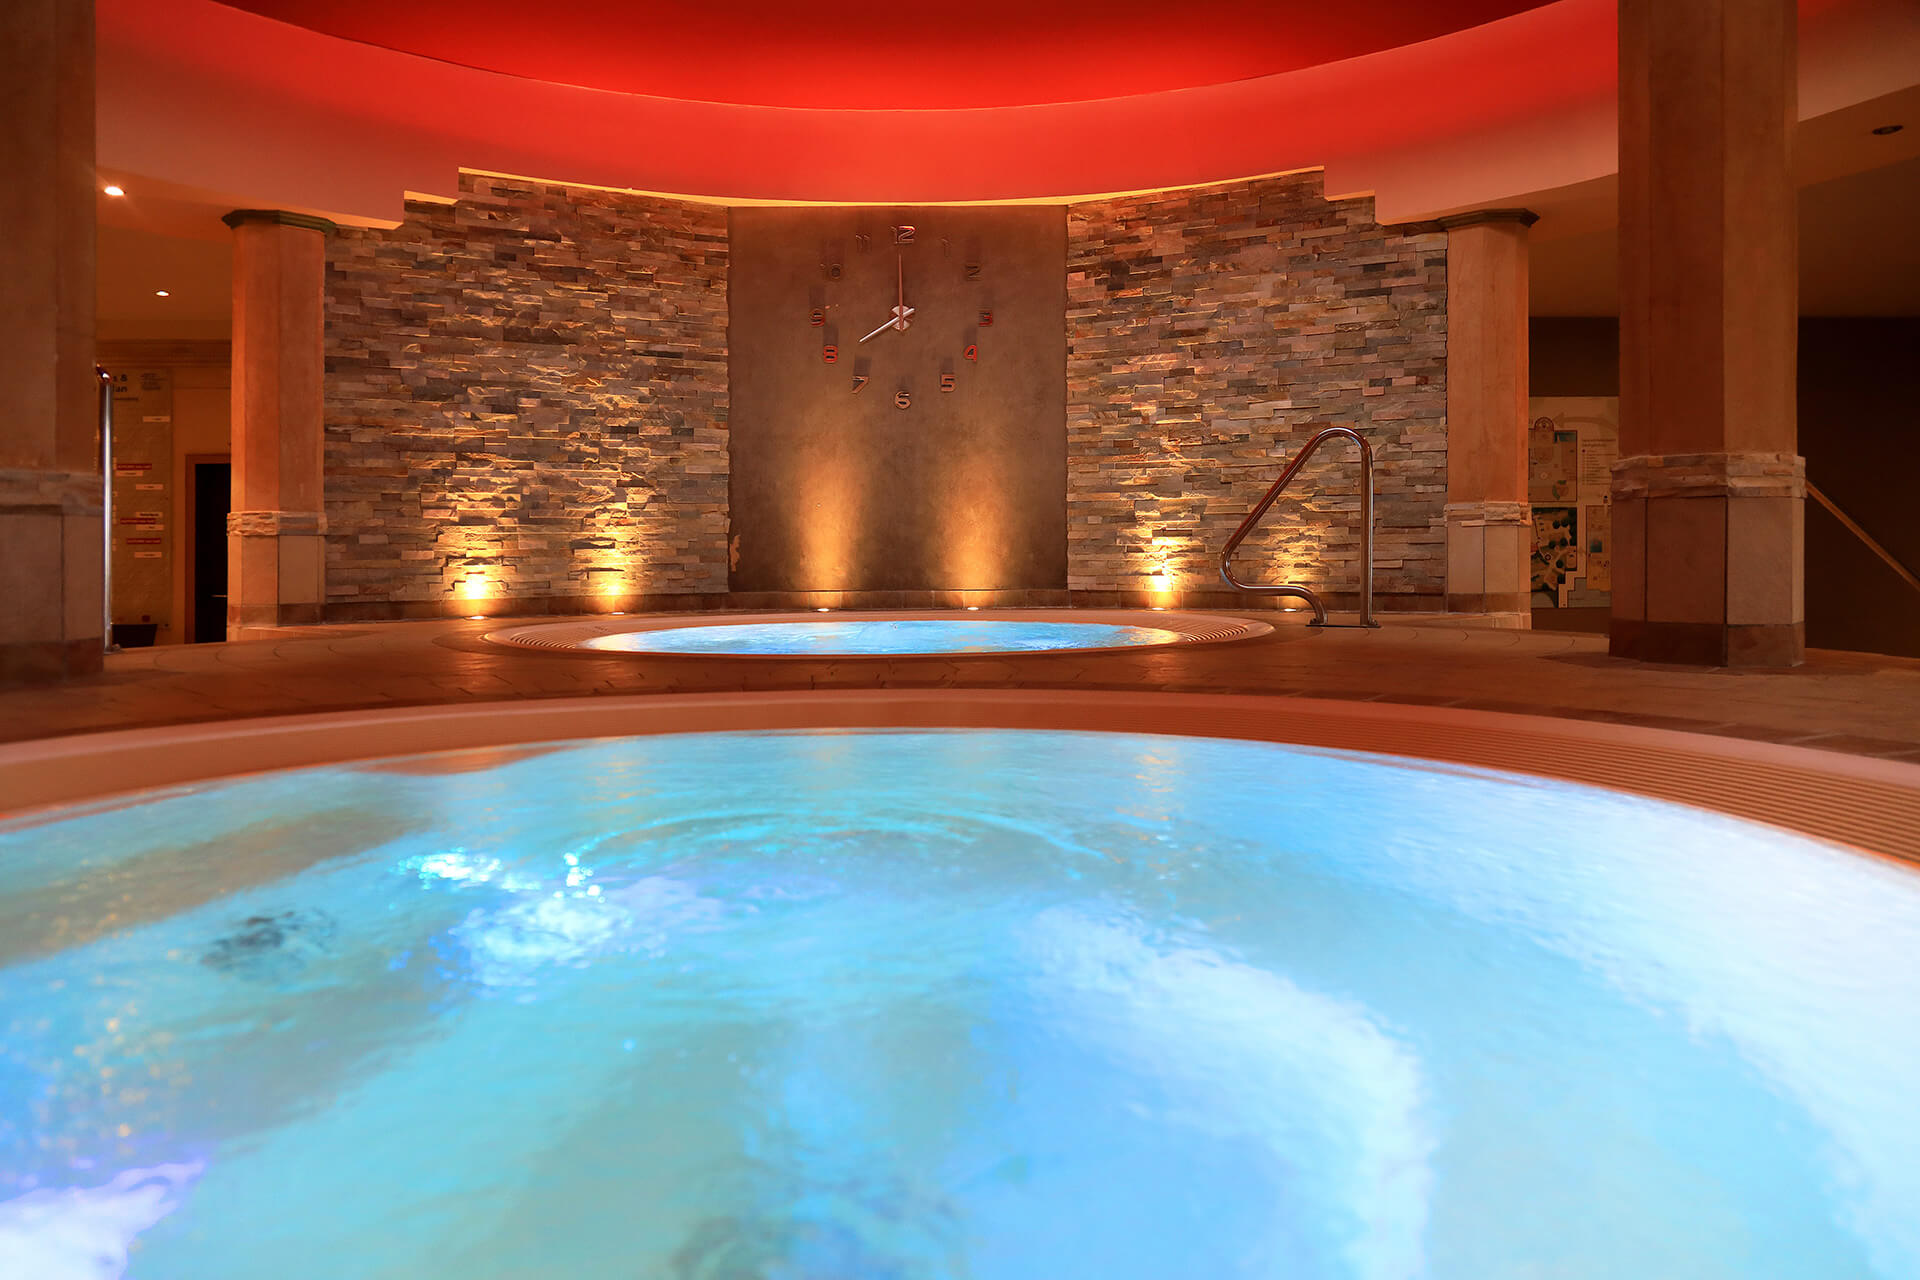 Wellness- & Saunaparadies in der Ostsee Therme